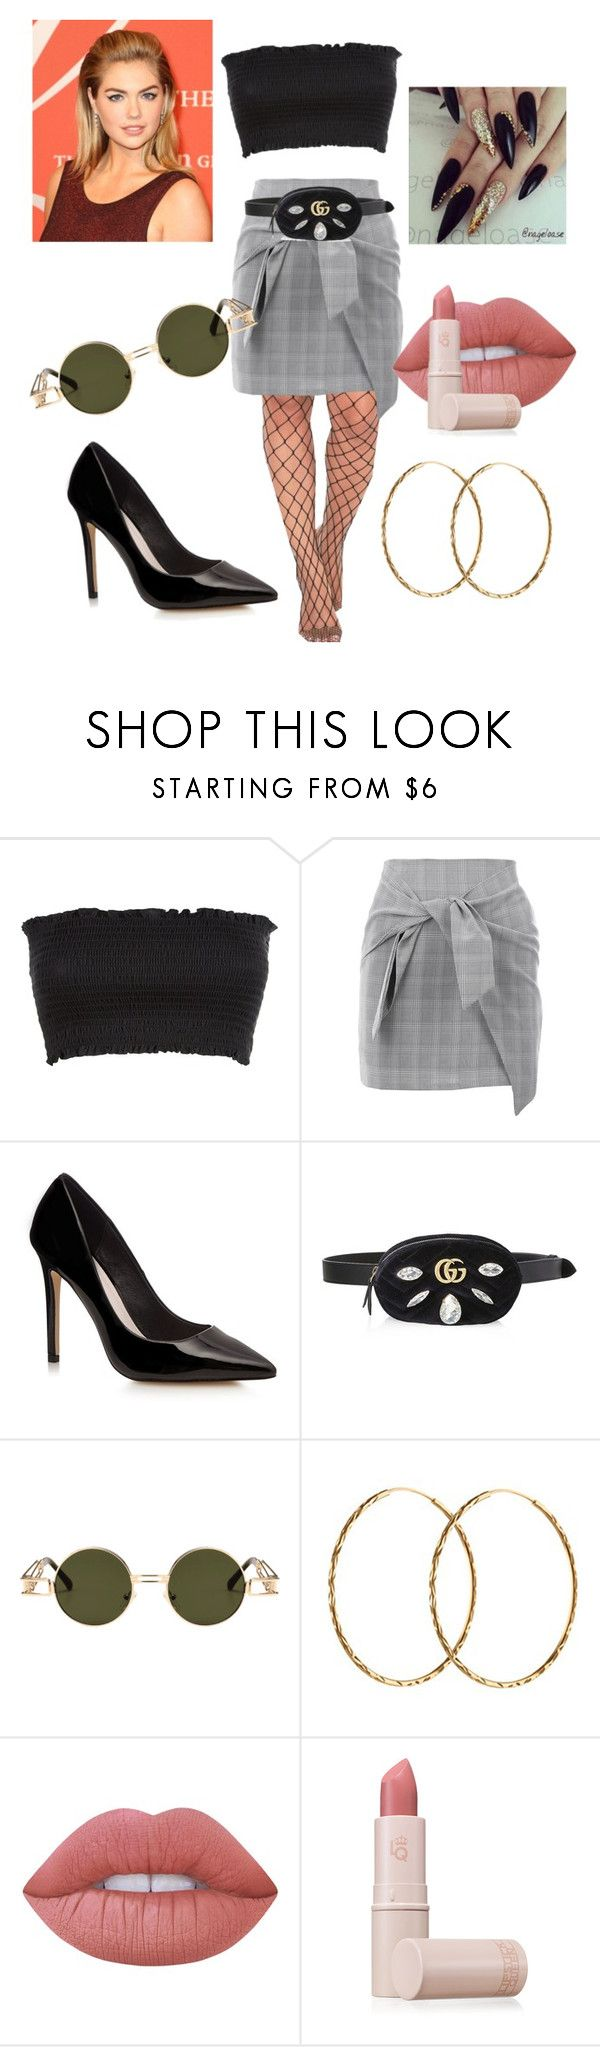 """""""#FiftyEight"""" by meganbarraza ❤ liked on Polyvore featuring Nasty Gal, Gucci, Pernille Corydon, Marc Jacobs, Lime Crime and Lipstick Queen"""